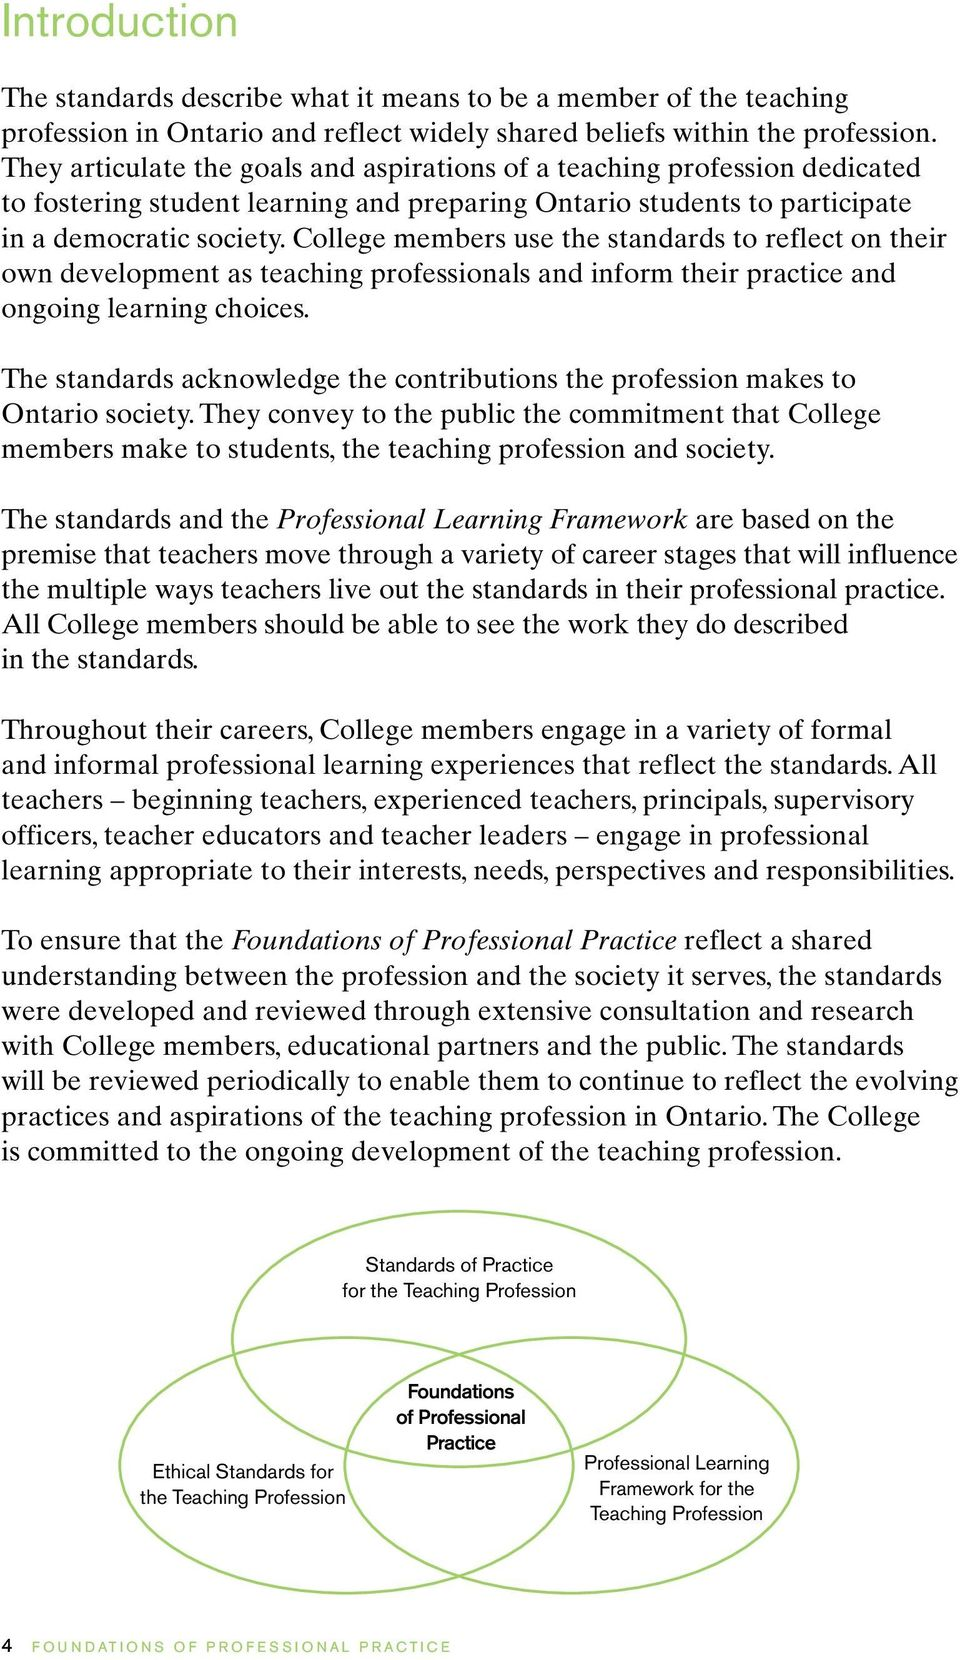 College members use the standards to reflect on their own development as teaching professionals and inform their practice and ongoing learning choices.